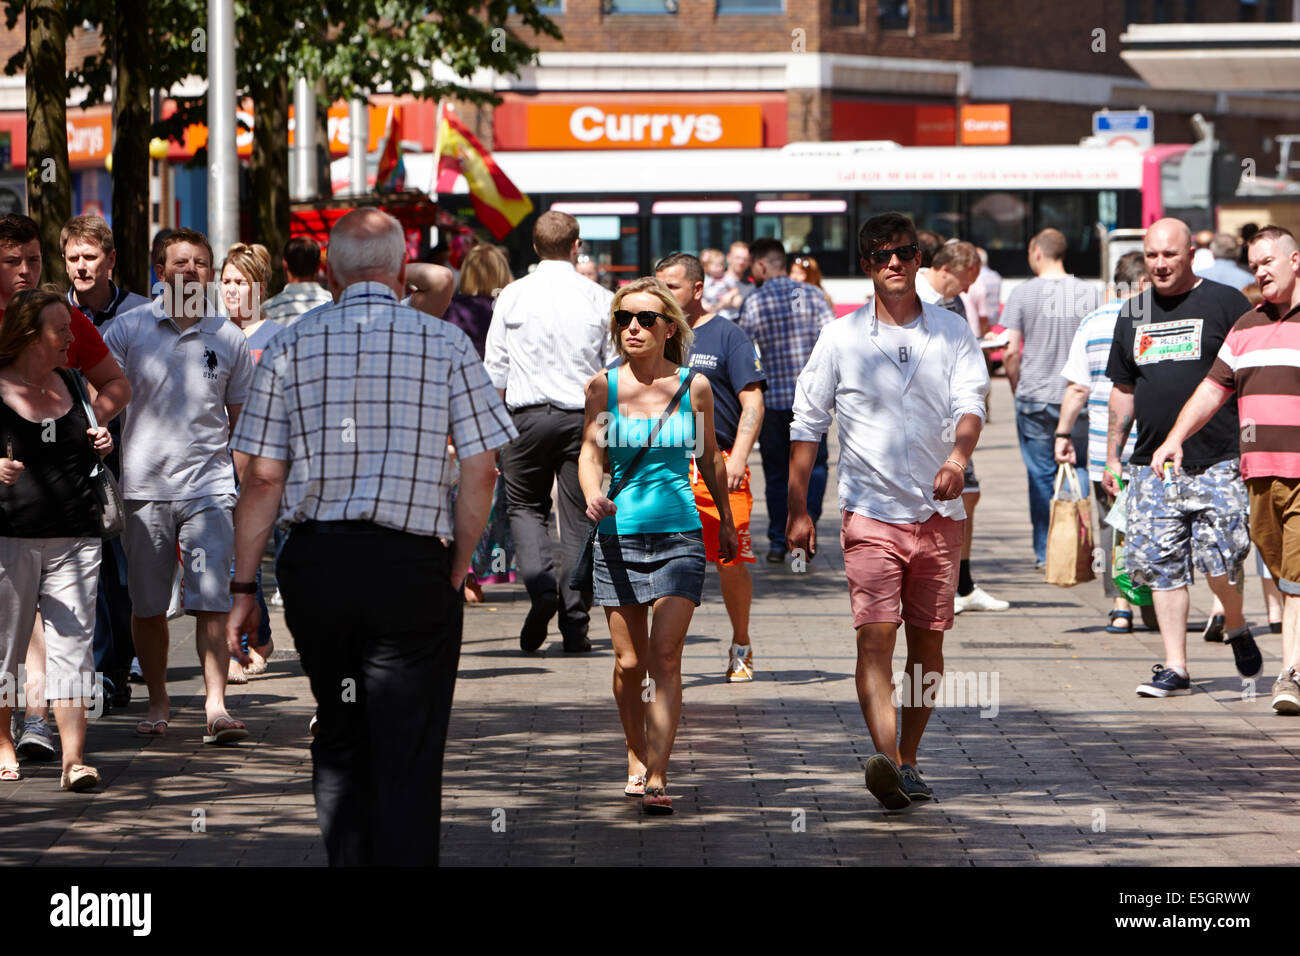 people walking through busy cornmarket on a hot sunny day in Belfast city centre - Stock Image